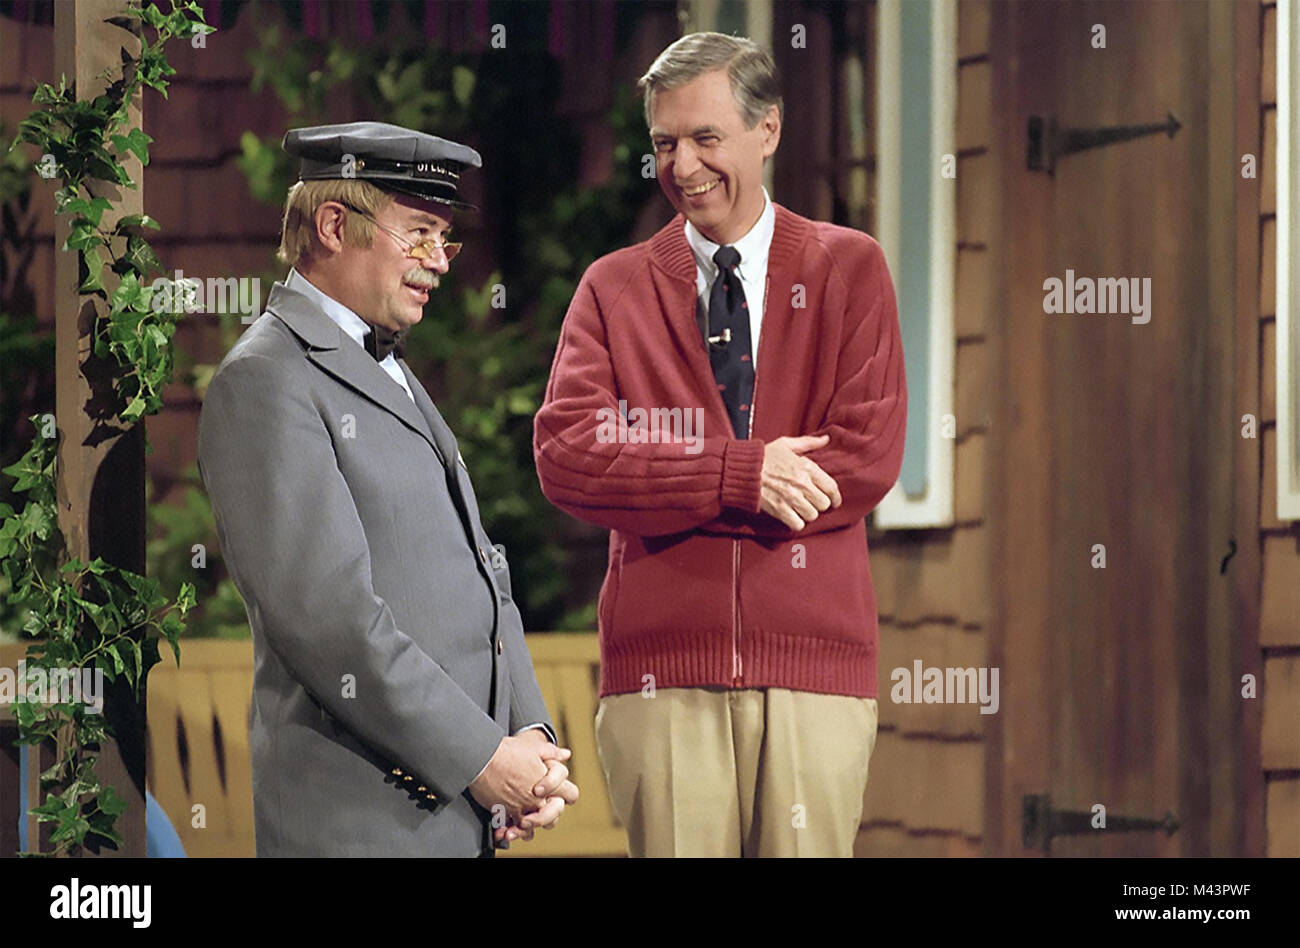 WON'T YOU BE MY NEIGHBOUR ? 2018 Temolo Productions film with David Newell at left and Fred Rogers - Stock Image